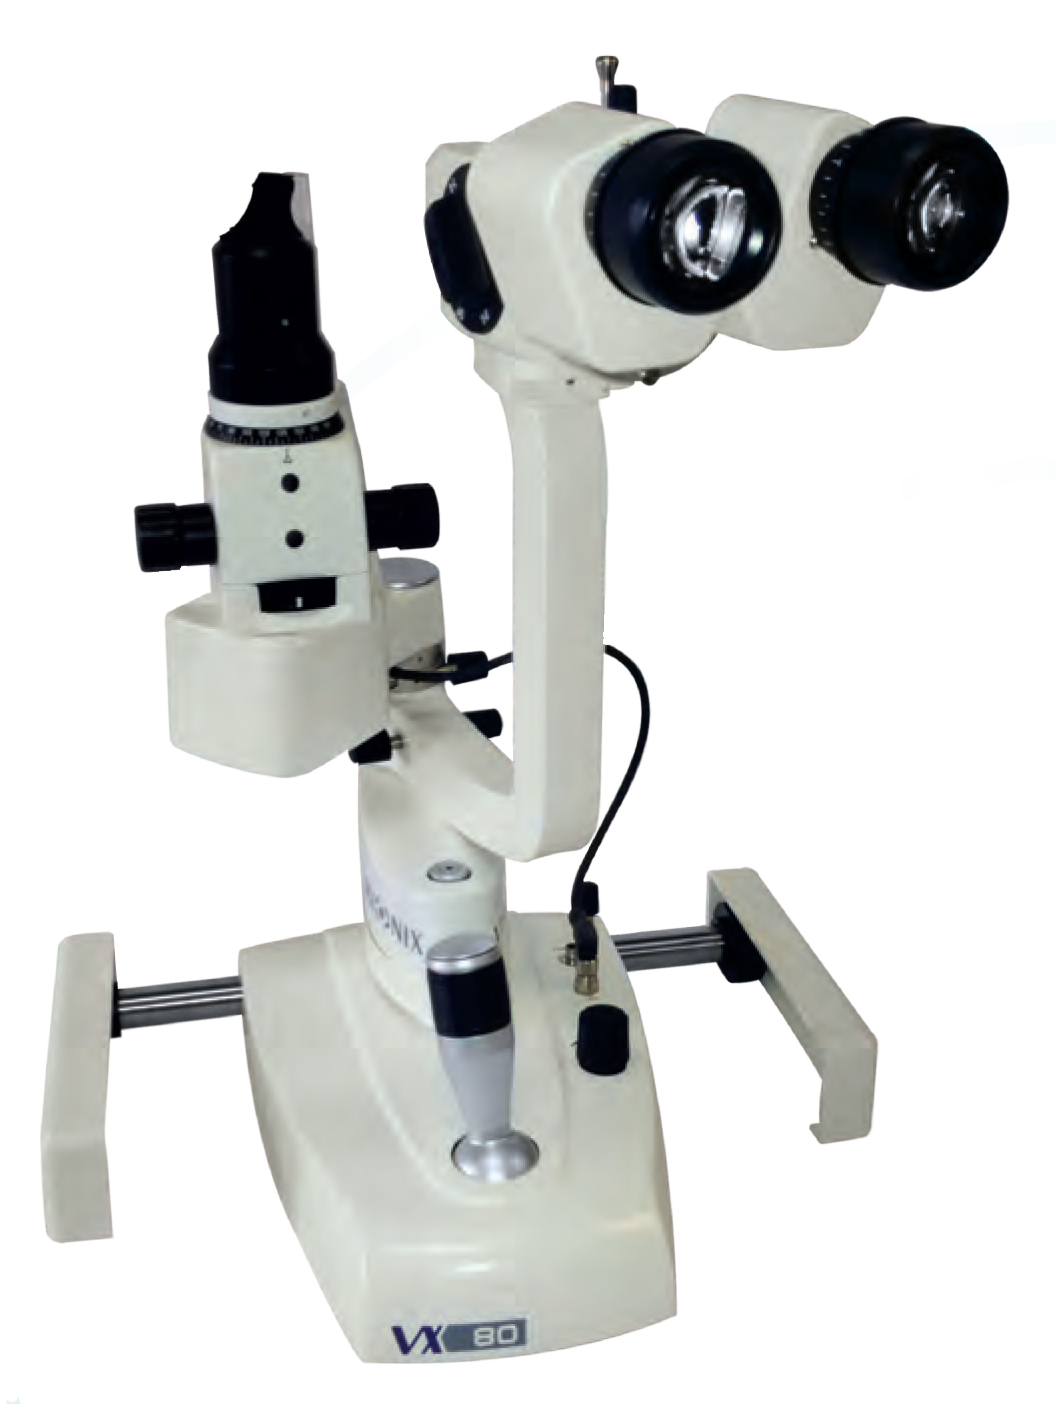 VX80 Examination Slit Lamp